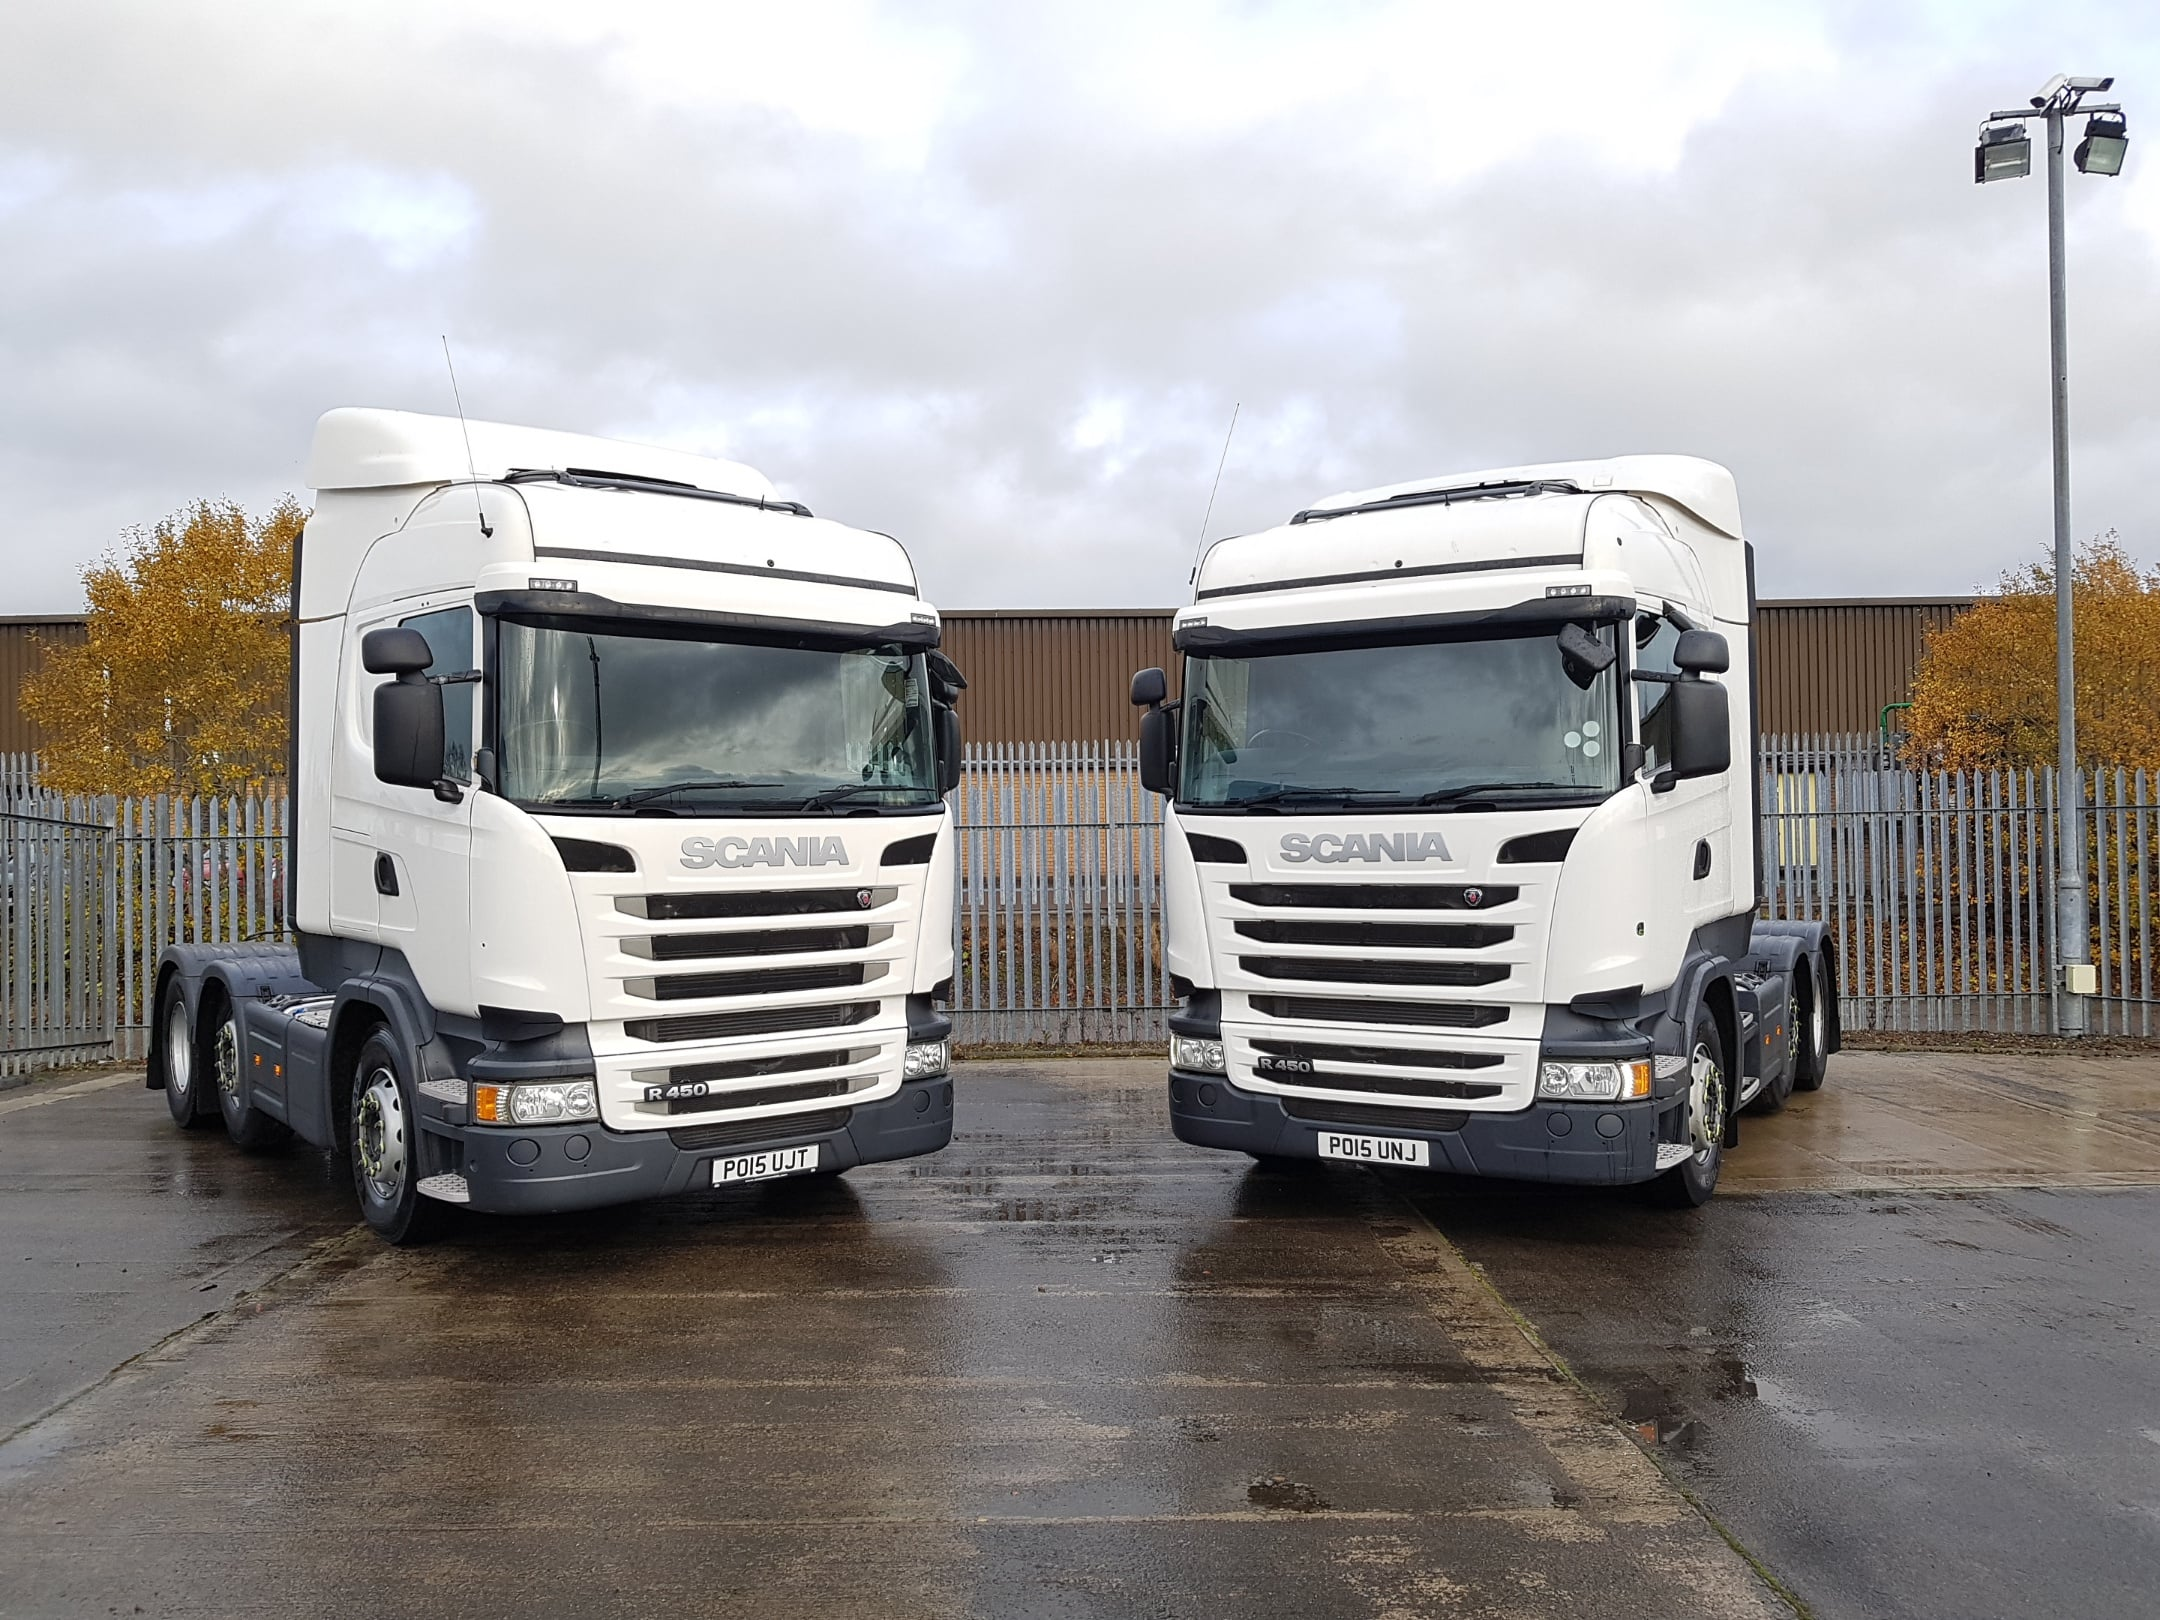 2015-scania-r450-sold-20181112_114926_resized_1-1